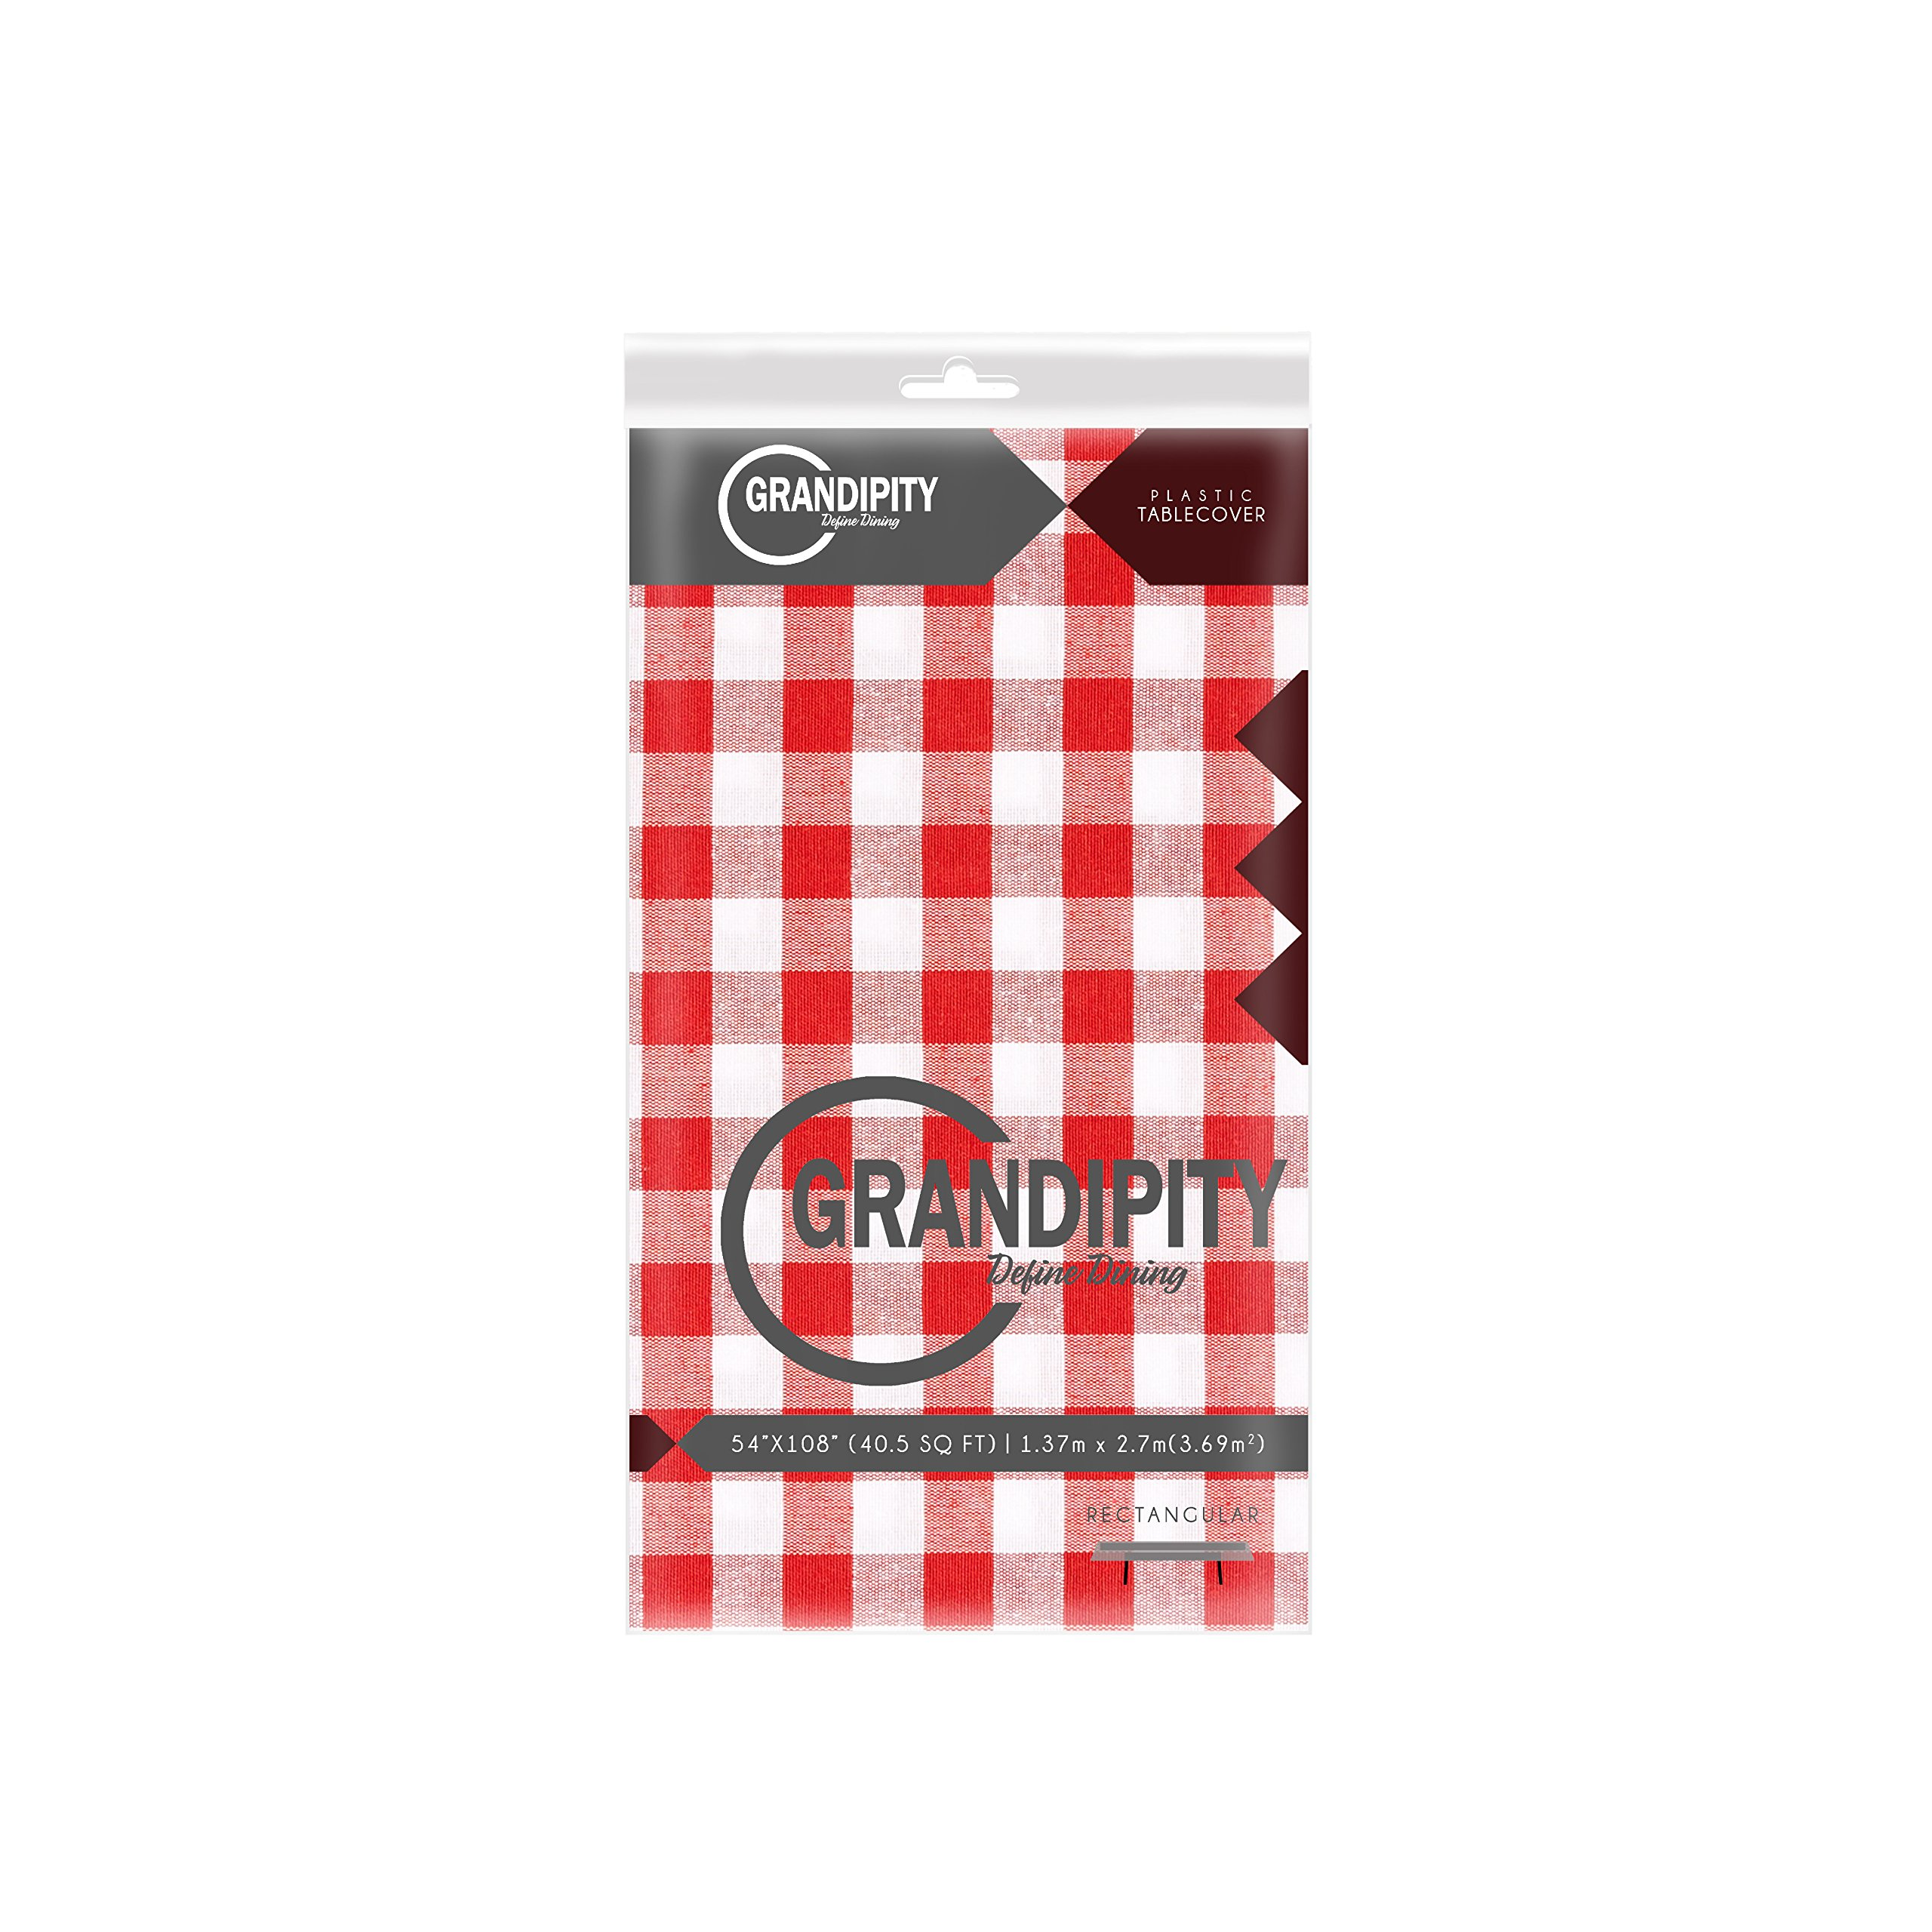 Red Gingham Checkered 12 Pack Premium Disposable Plastic Picnic Tablecloth 54 Inch. x 108 Inch. Rectangle Table Cover By Grandipity by Grandipity (Image #2)